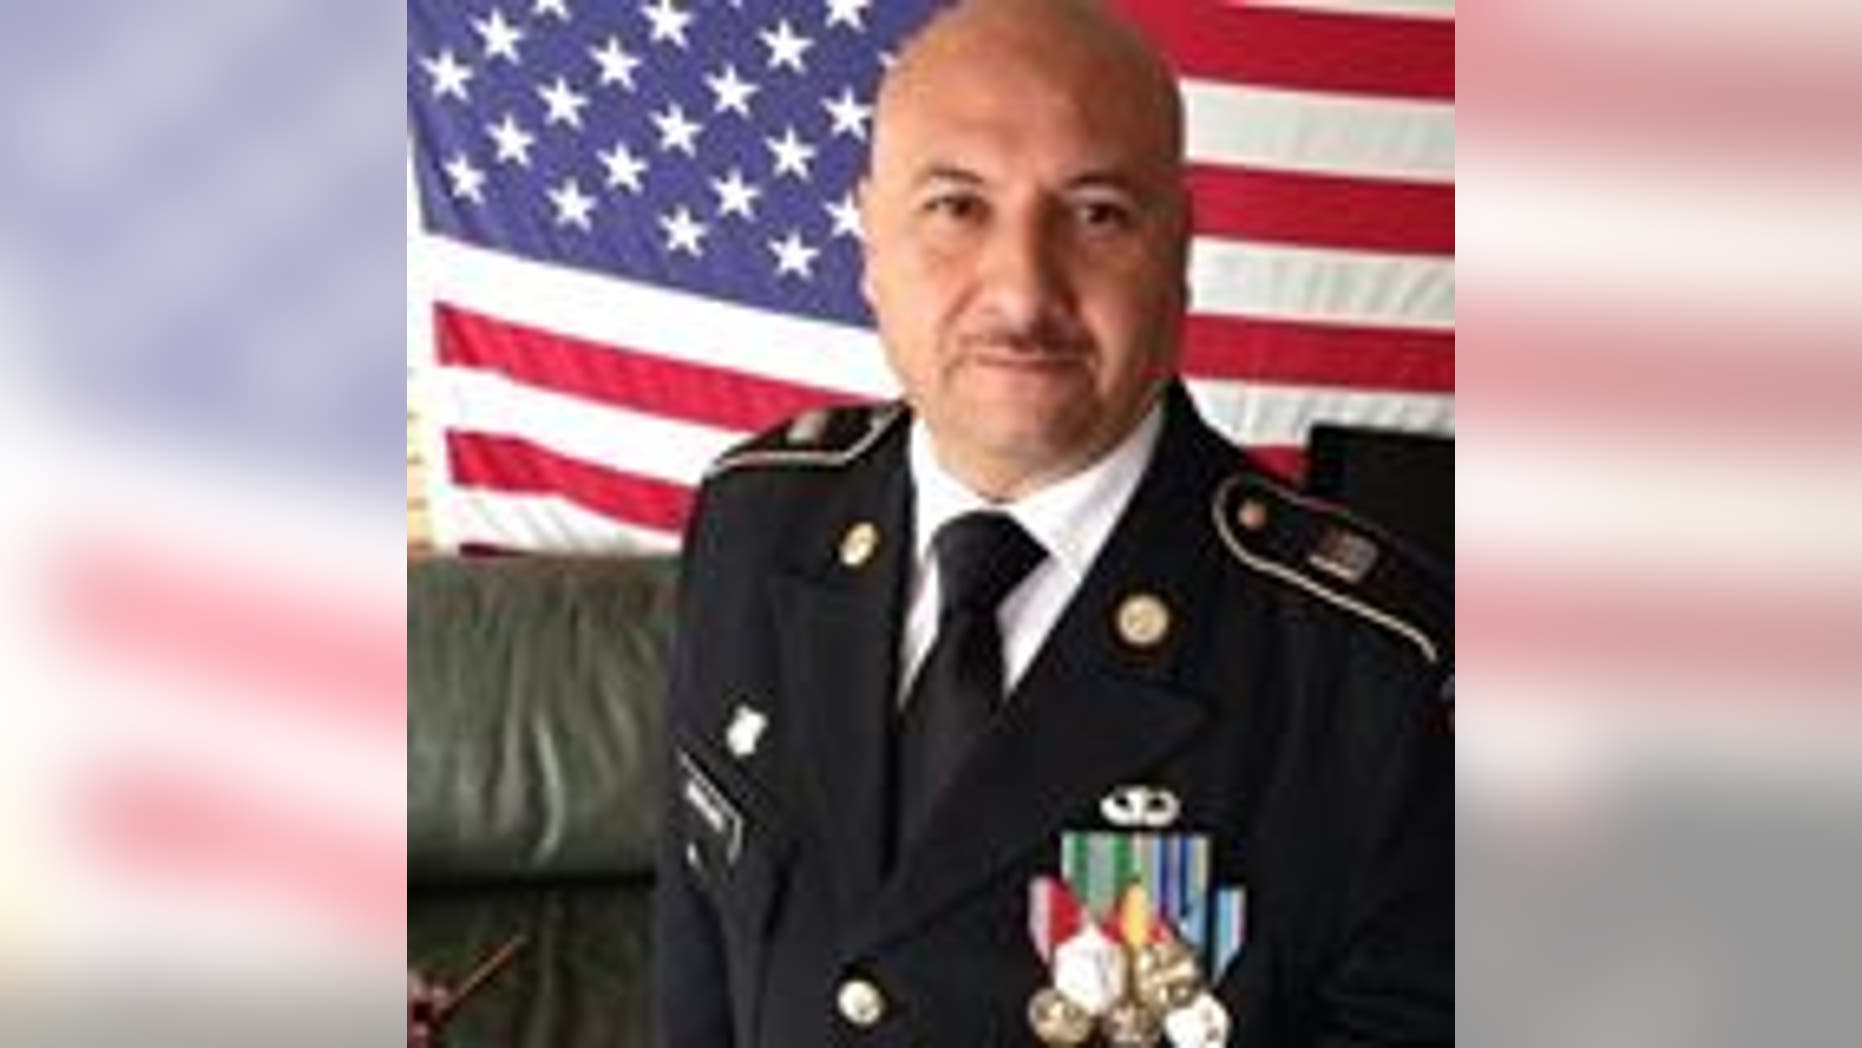 Deported U.S. Army veteran Hector Barajas, pardoned by California's governor, was expected to become a U.S. citizen, April 13, 2018.